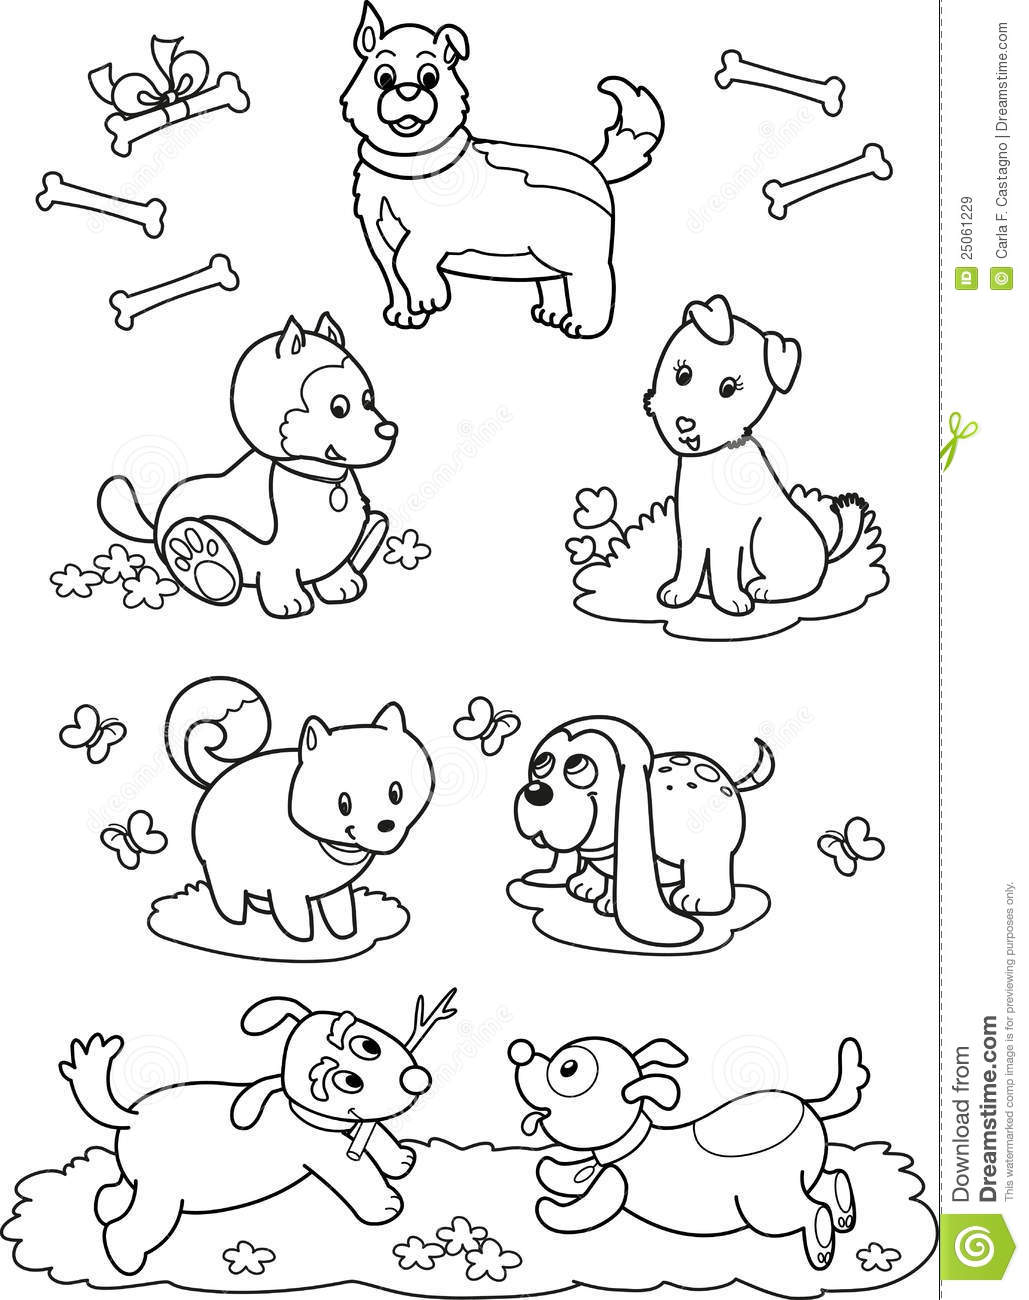 Cute Cartoon Dogs Coloring Page Royalty Free Stock Images